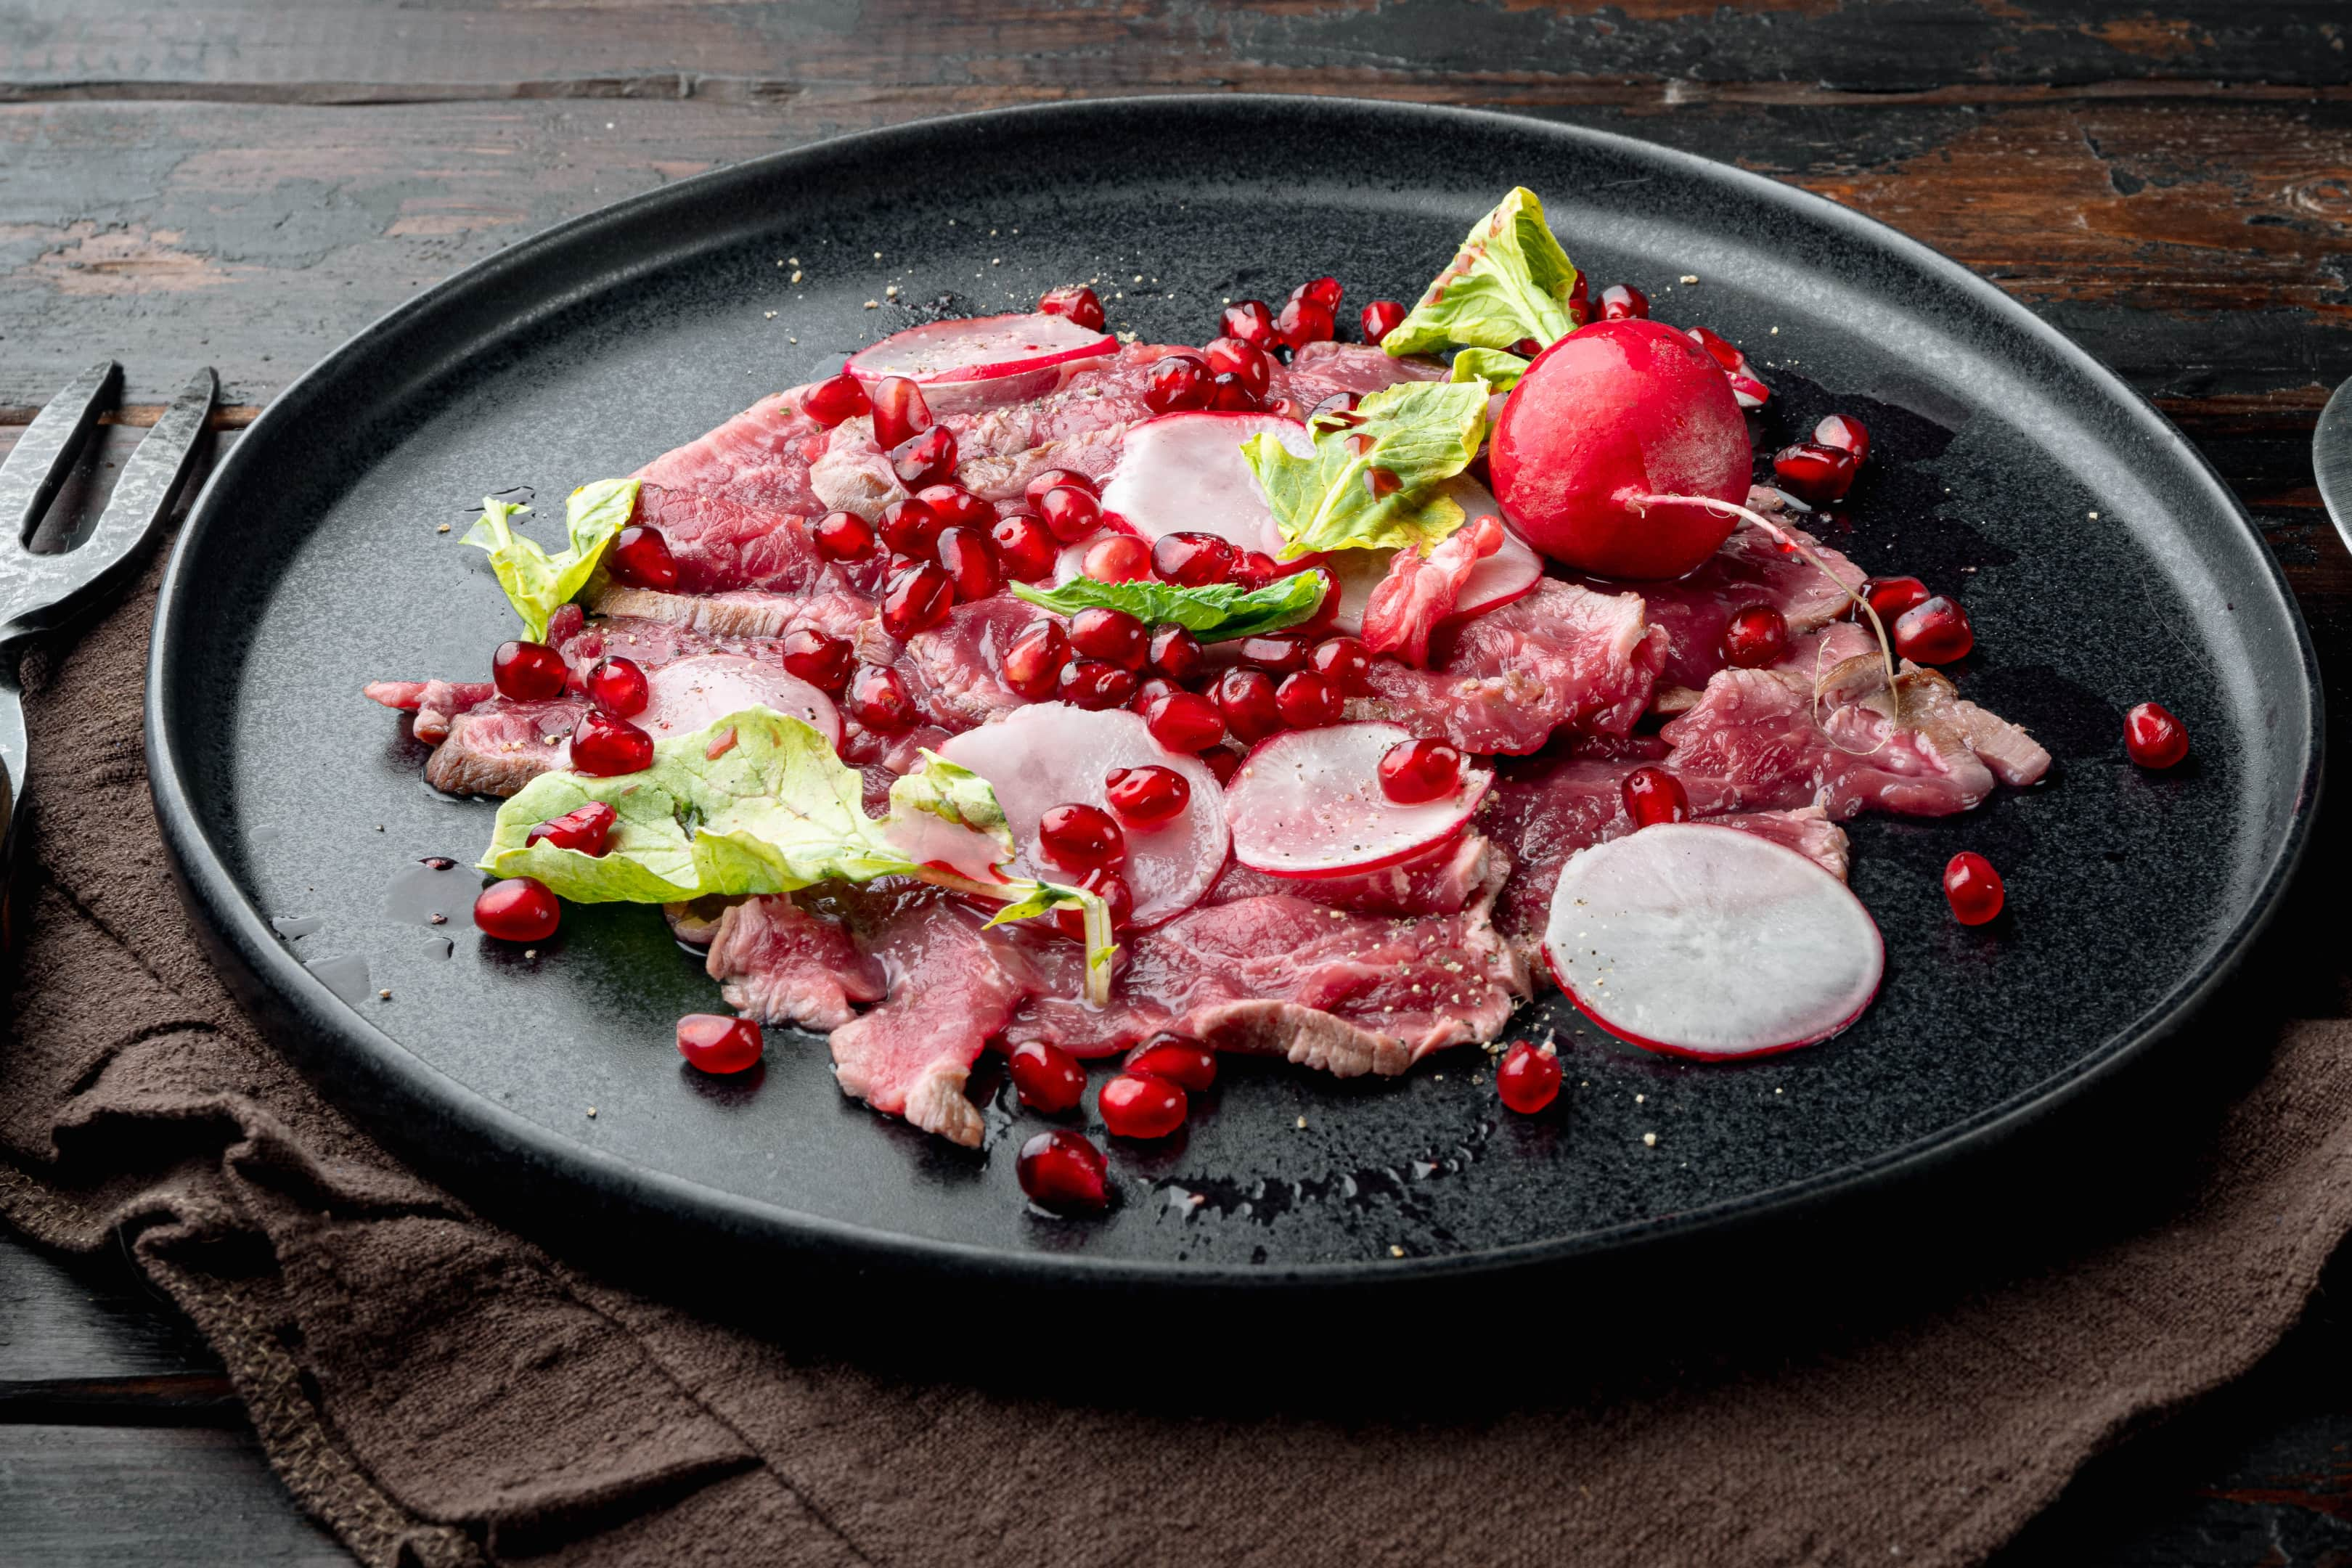 Beef carpaccio with radish, pomegranate seeds and olive oil